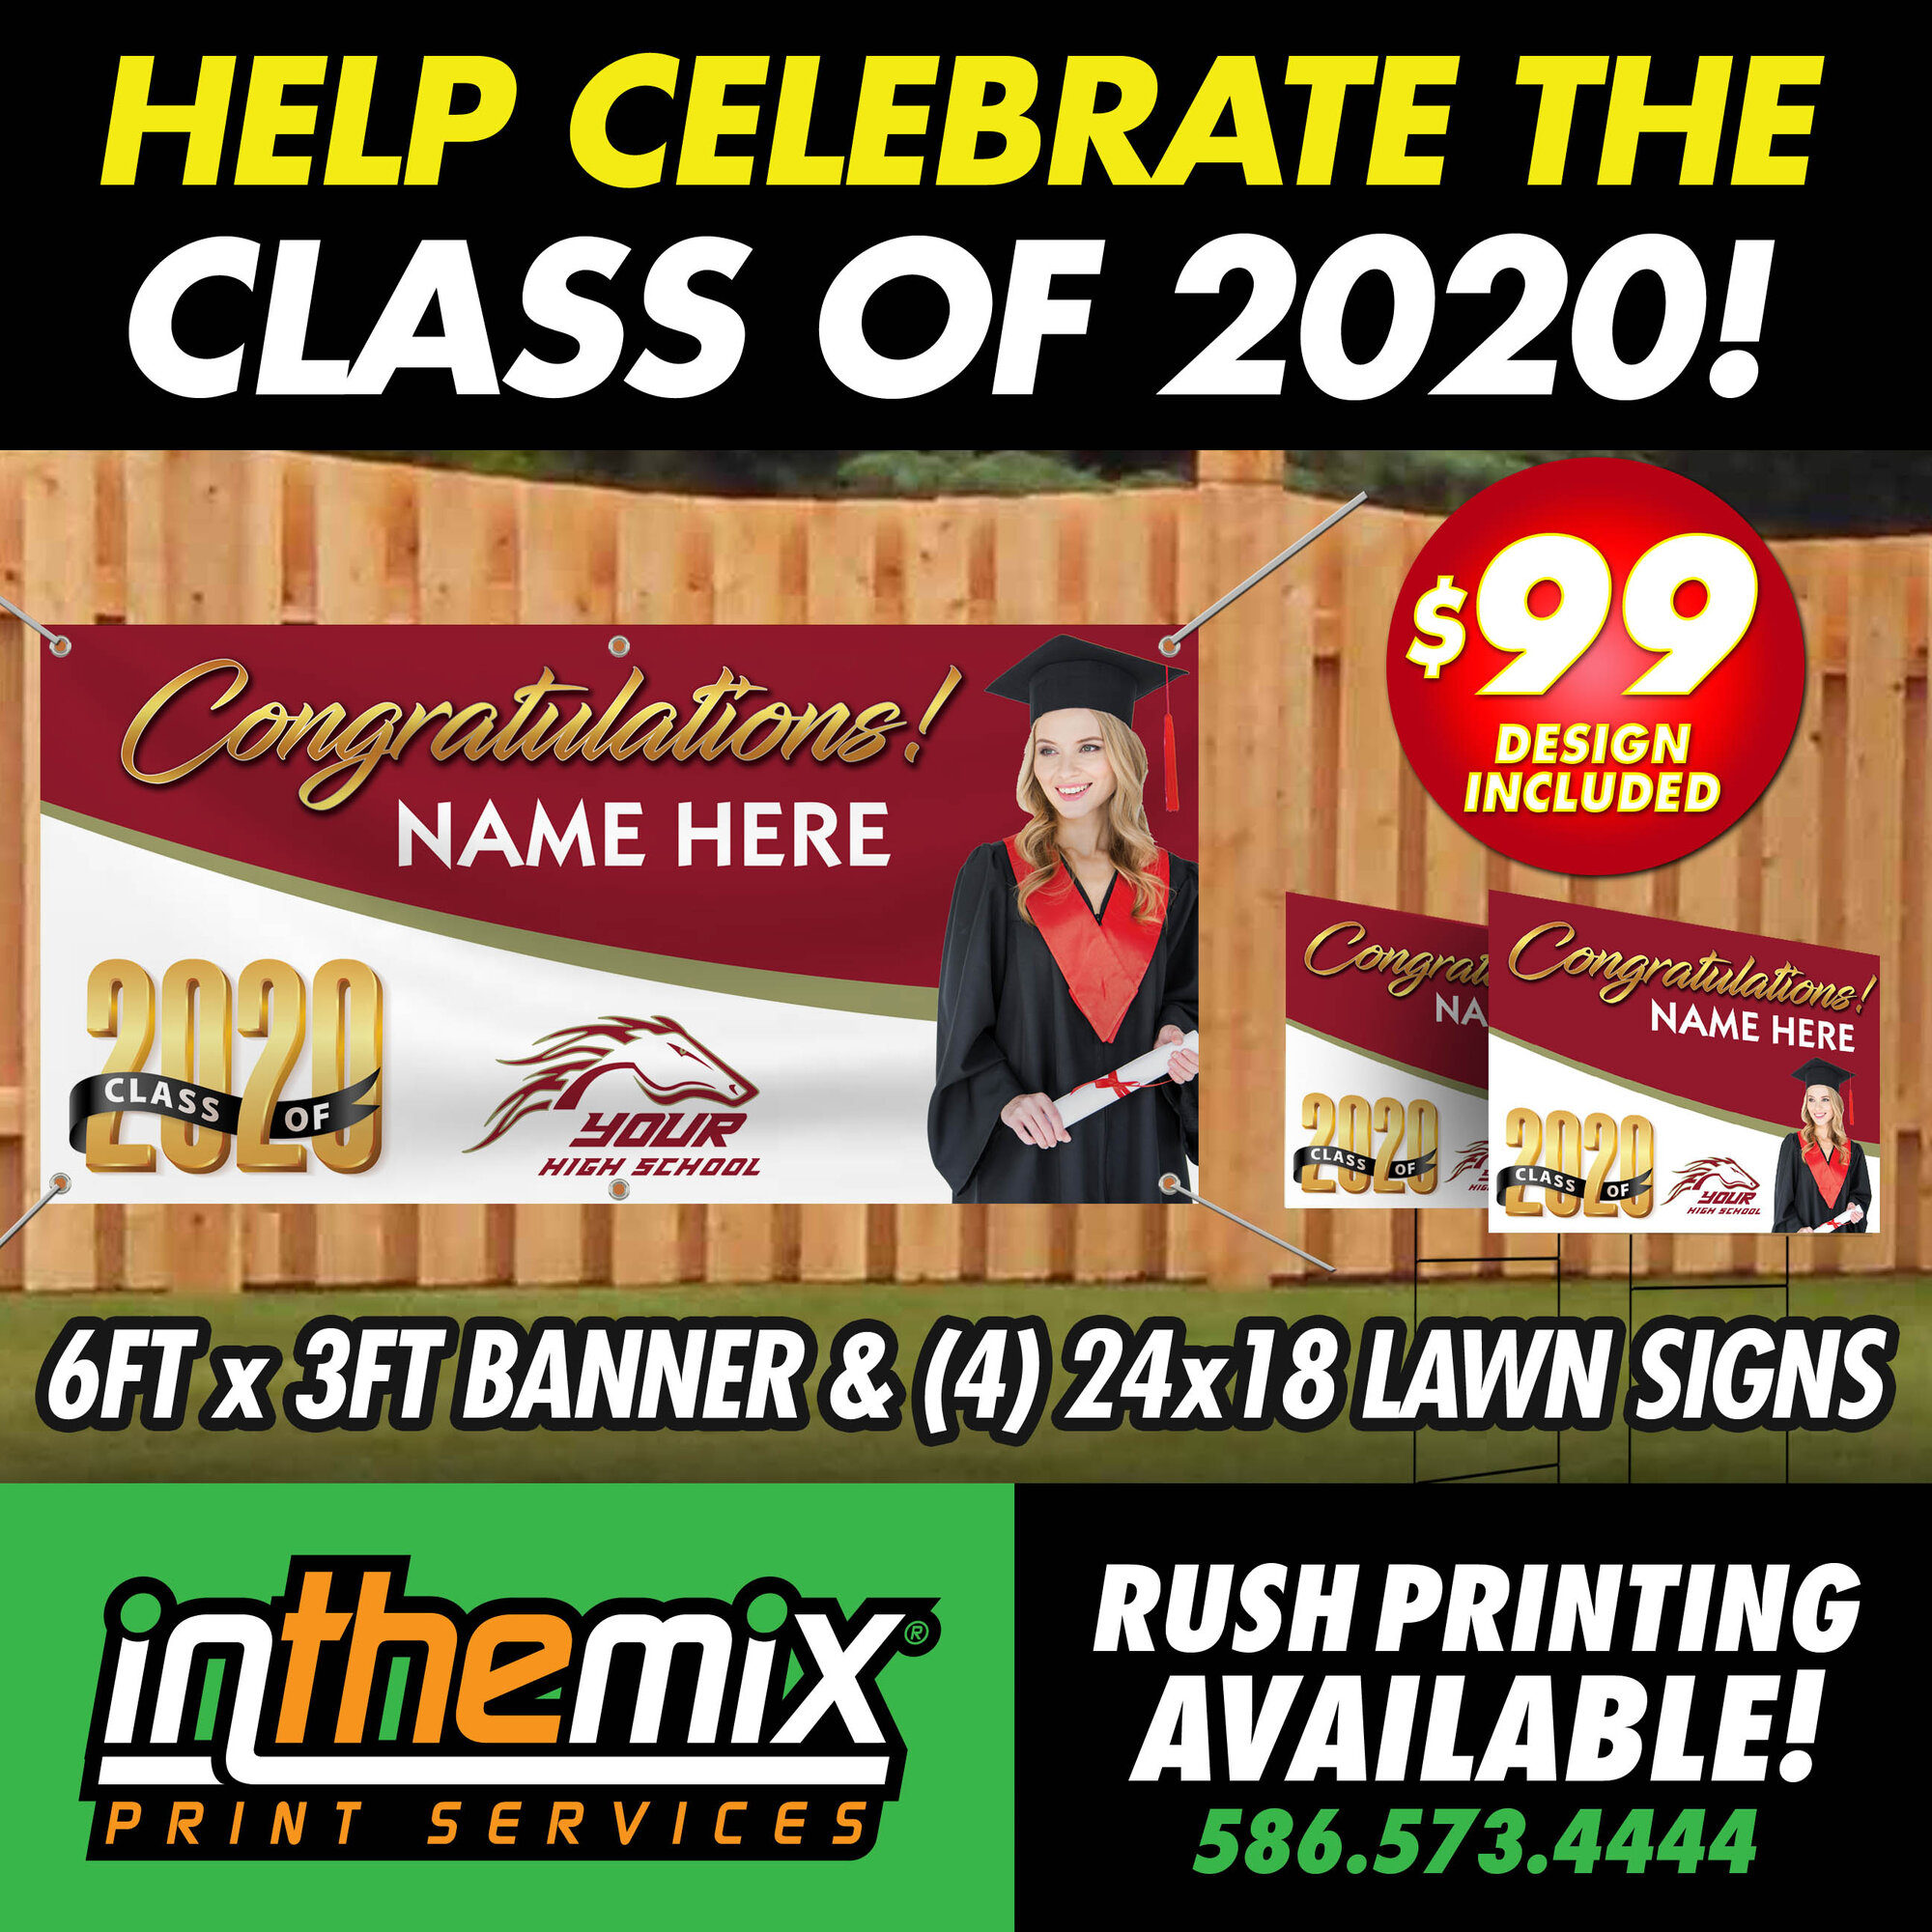 https://www.myinthemix.com/images/products_gallery_images/grads95.jpg